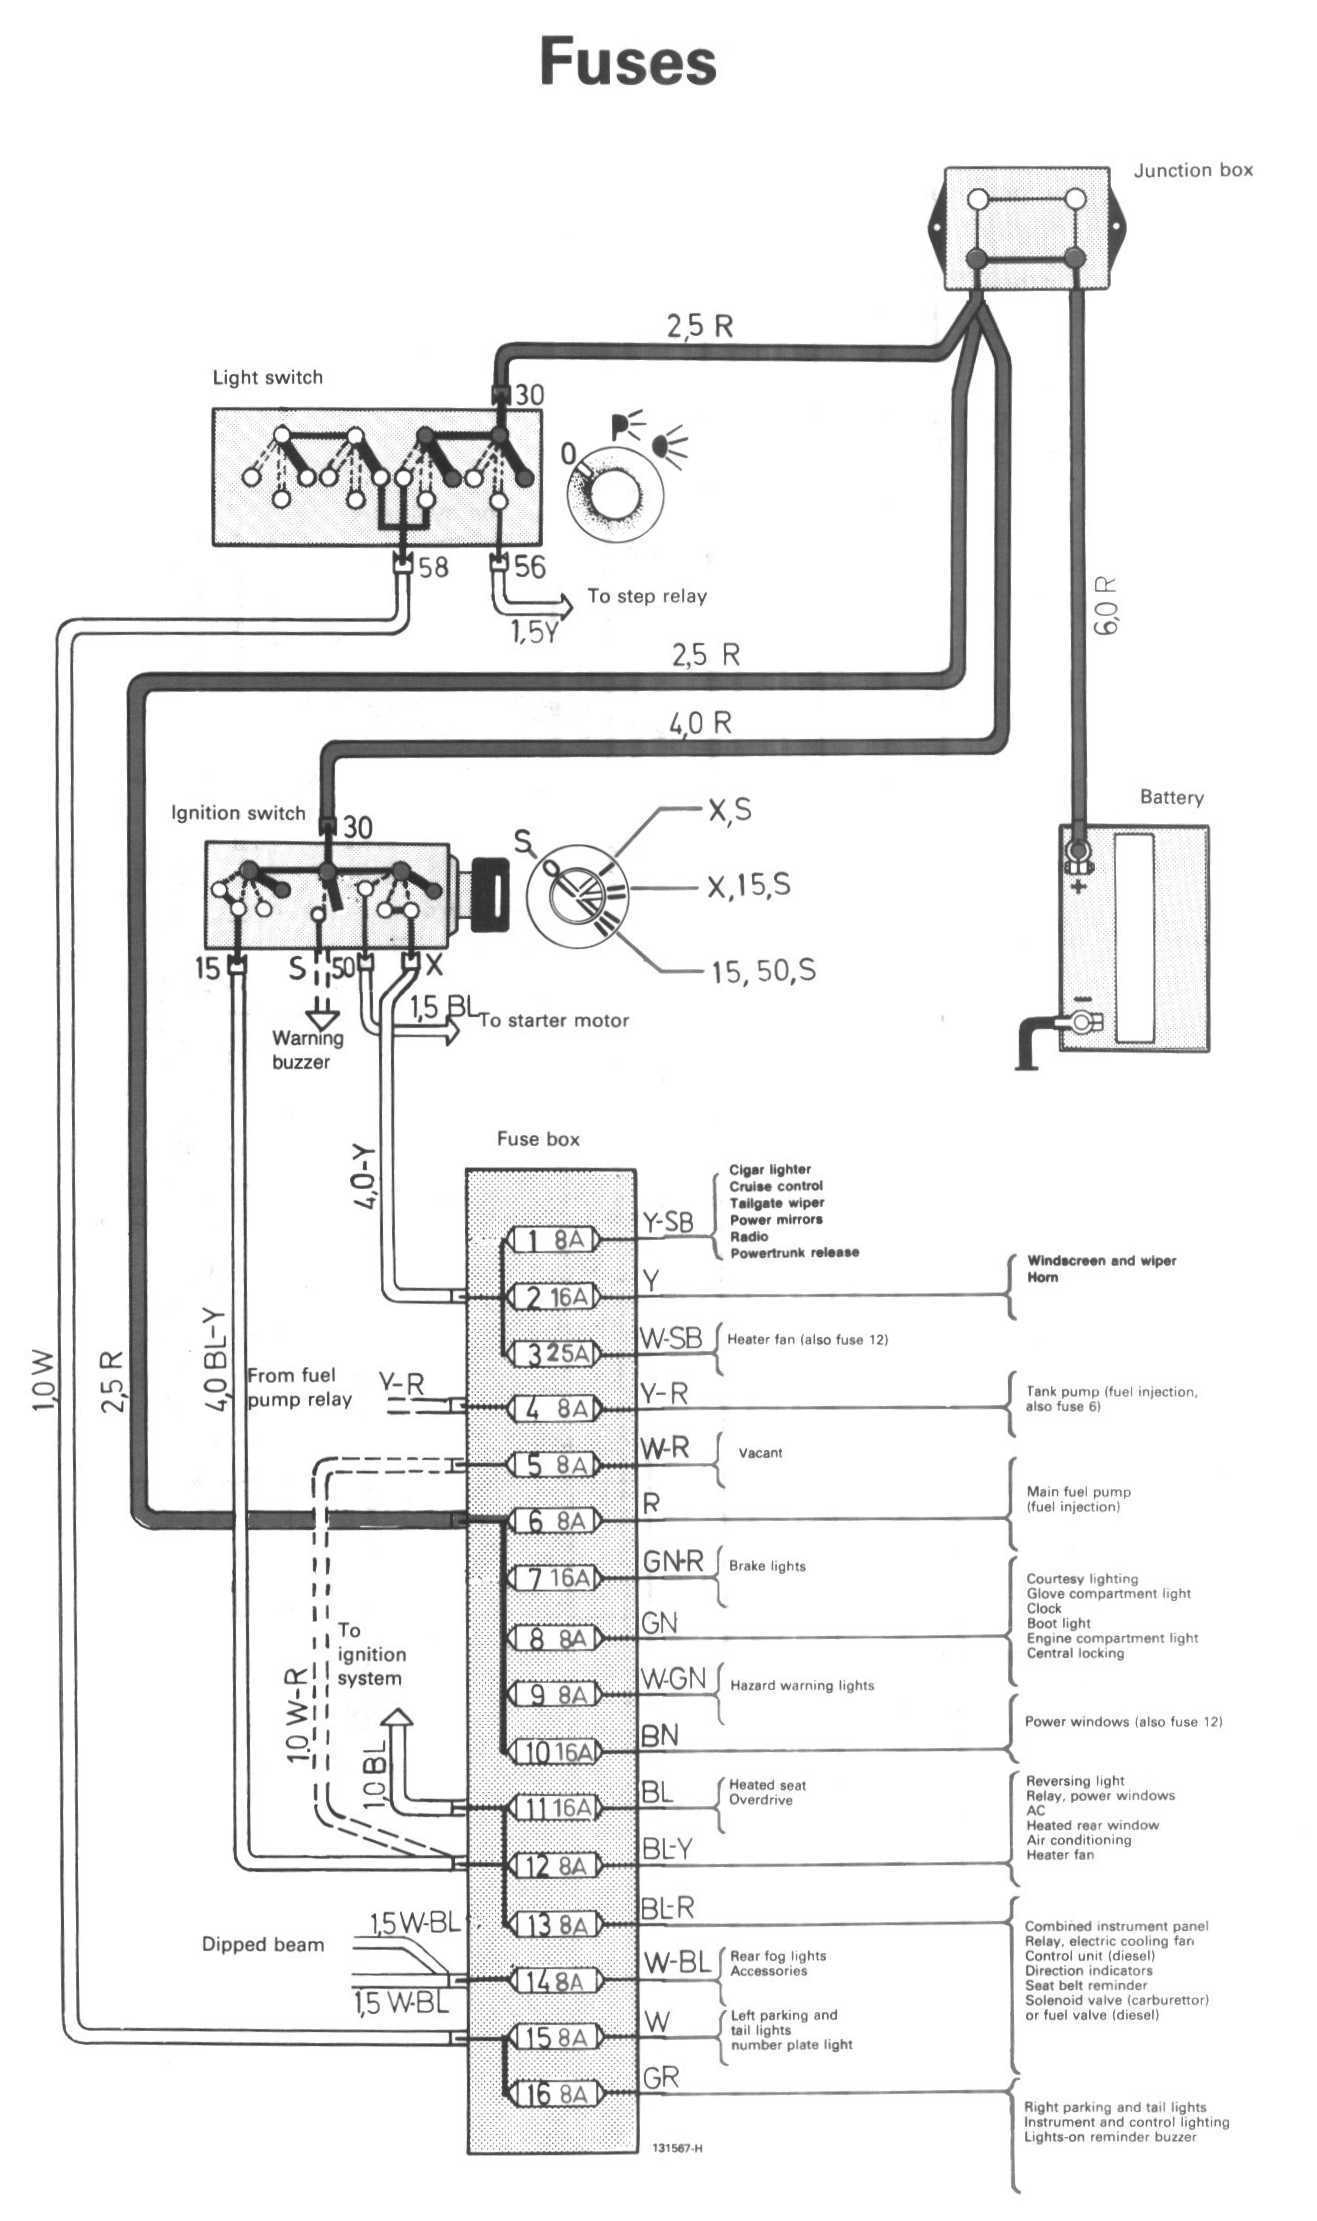 hight resolution of 1992 volvo 240 fuse box diagram wiring diagram third level acura cl fuse box 2001 volvo 240 fuse box